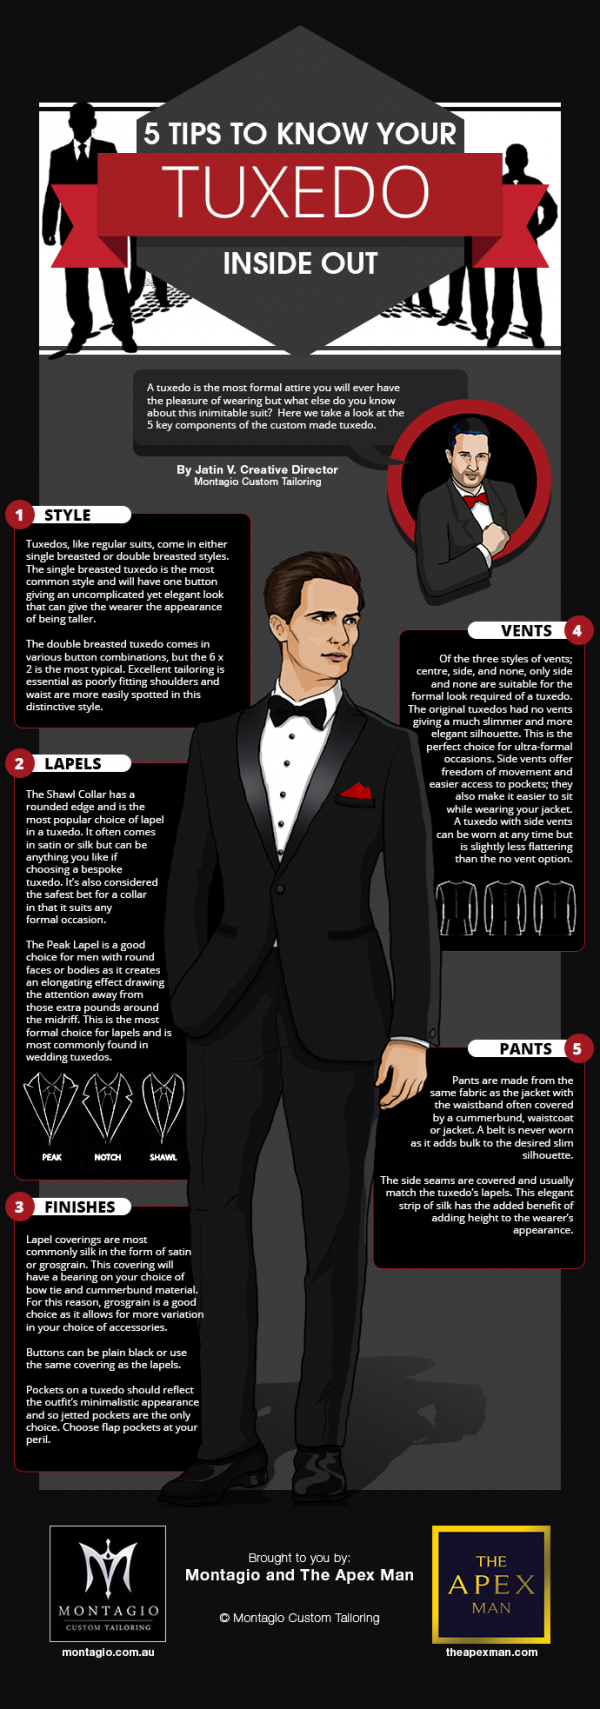 5_Tips_to_Know_Your_Tuxedo_Inside_Out